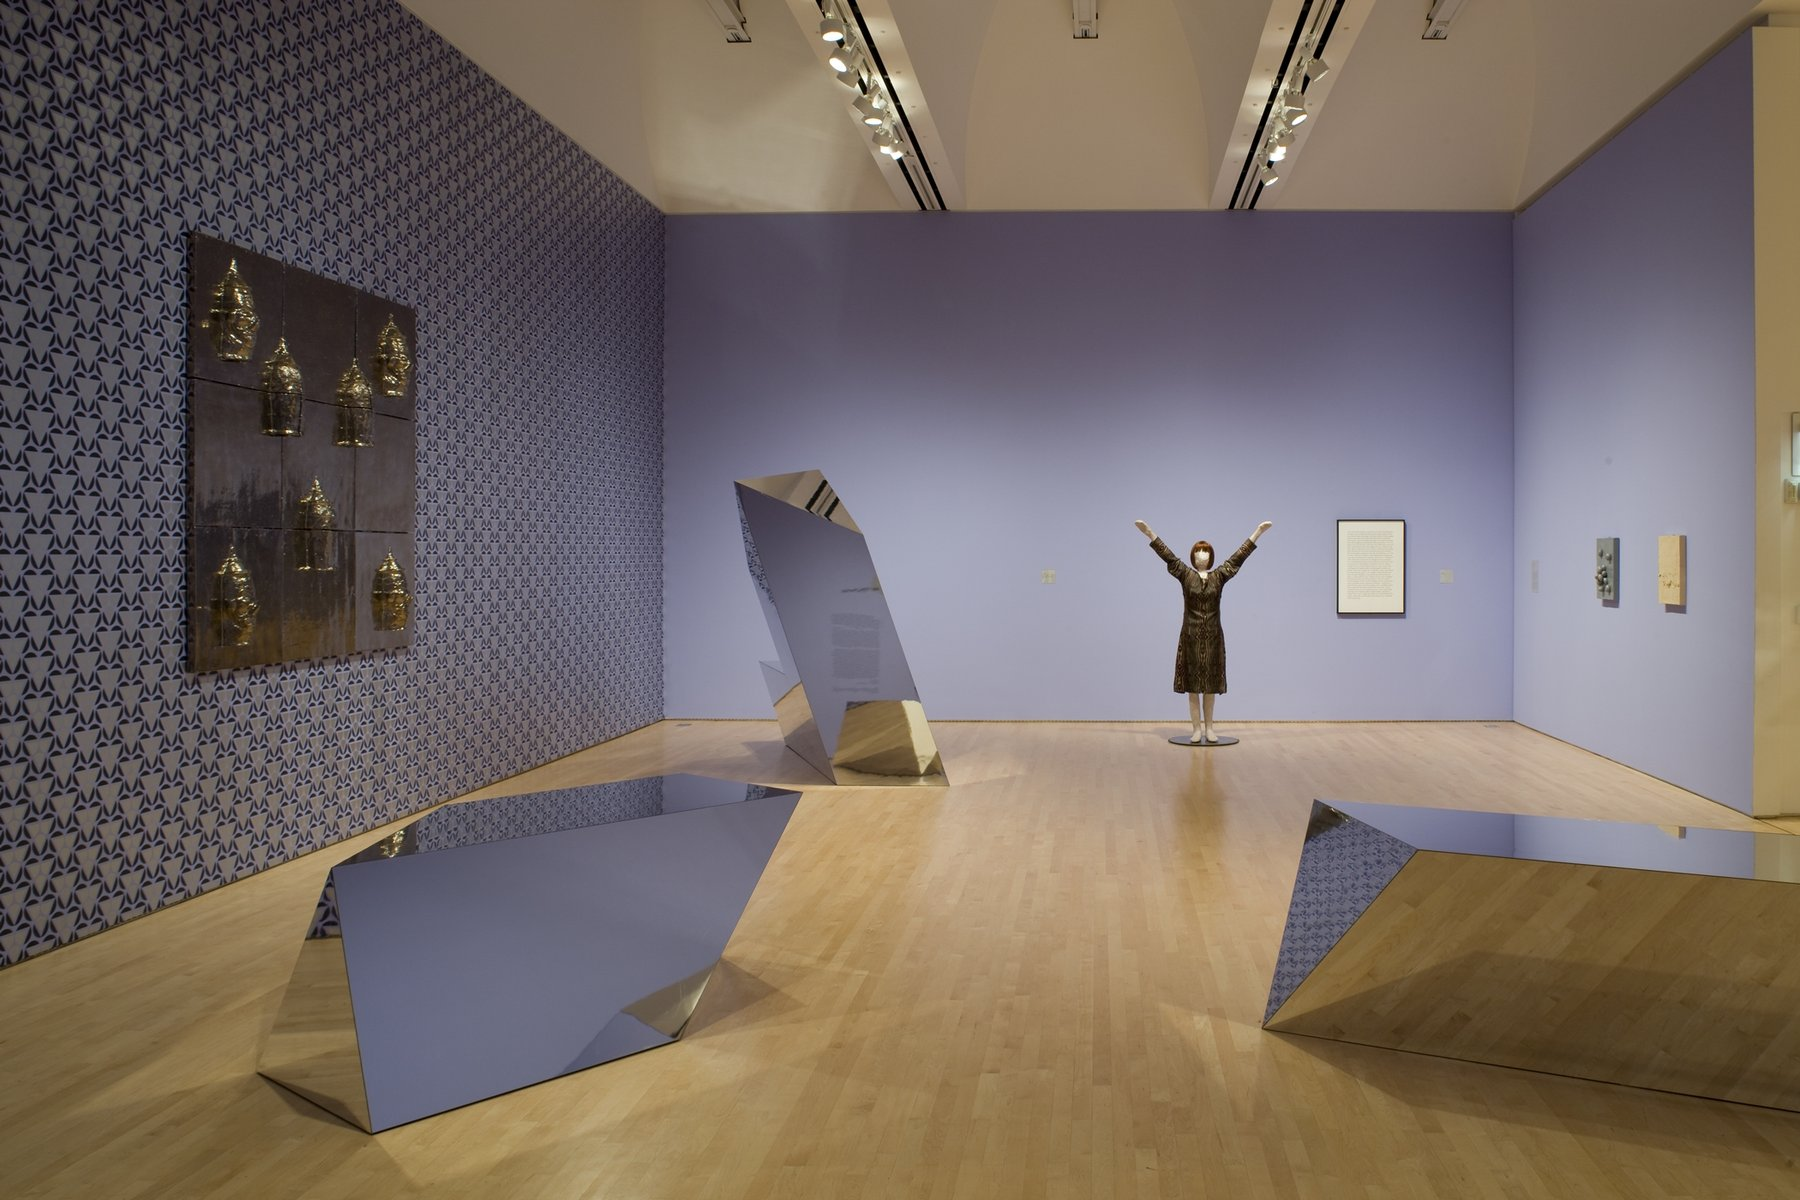 A sculpture of a woman with her hands raised in the air next to a framed block of text, three wall-hanging sculptures, and three reflective geometric sculptures